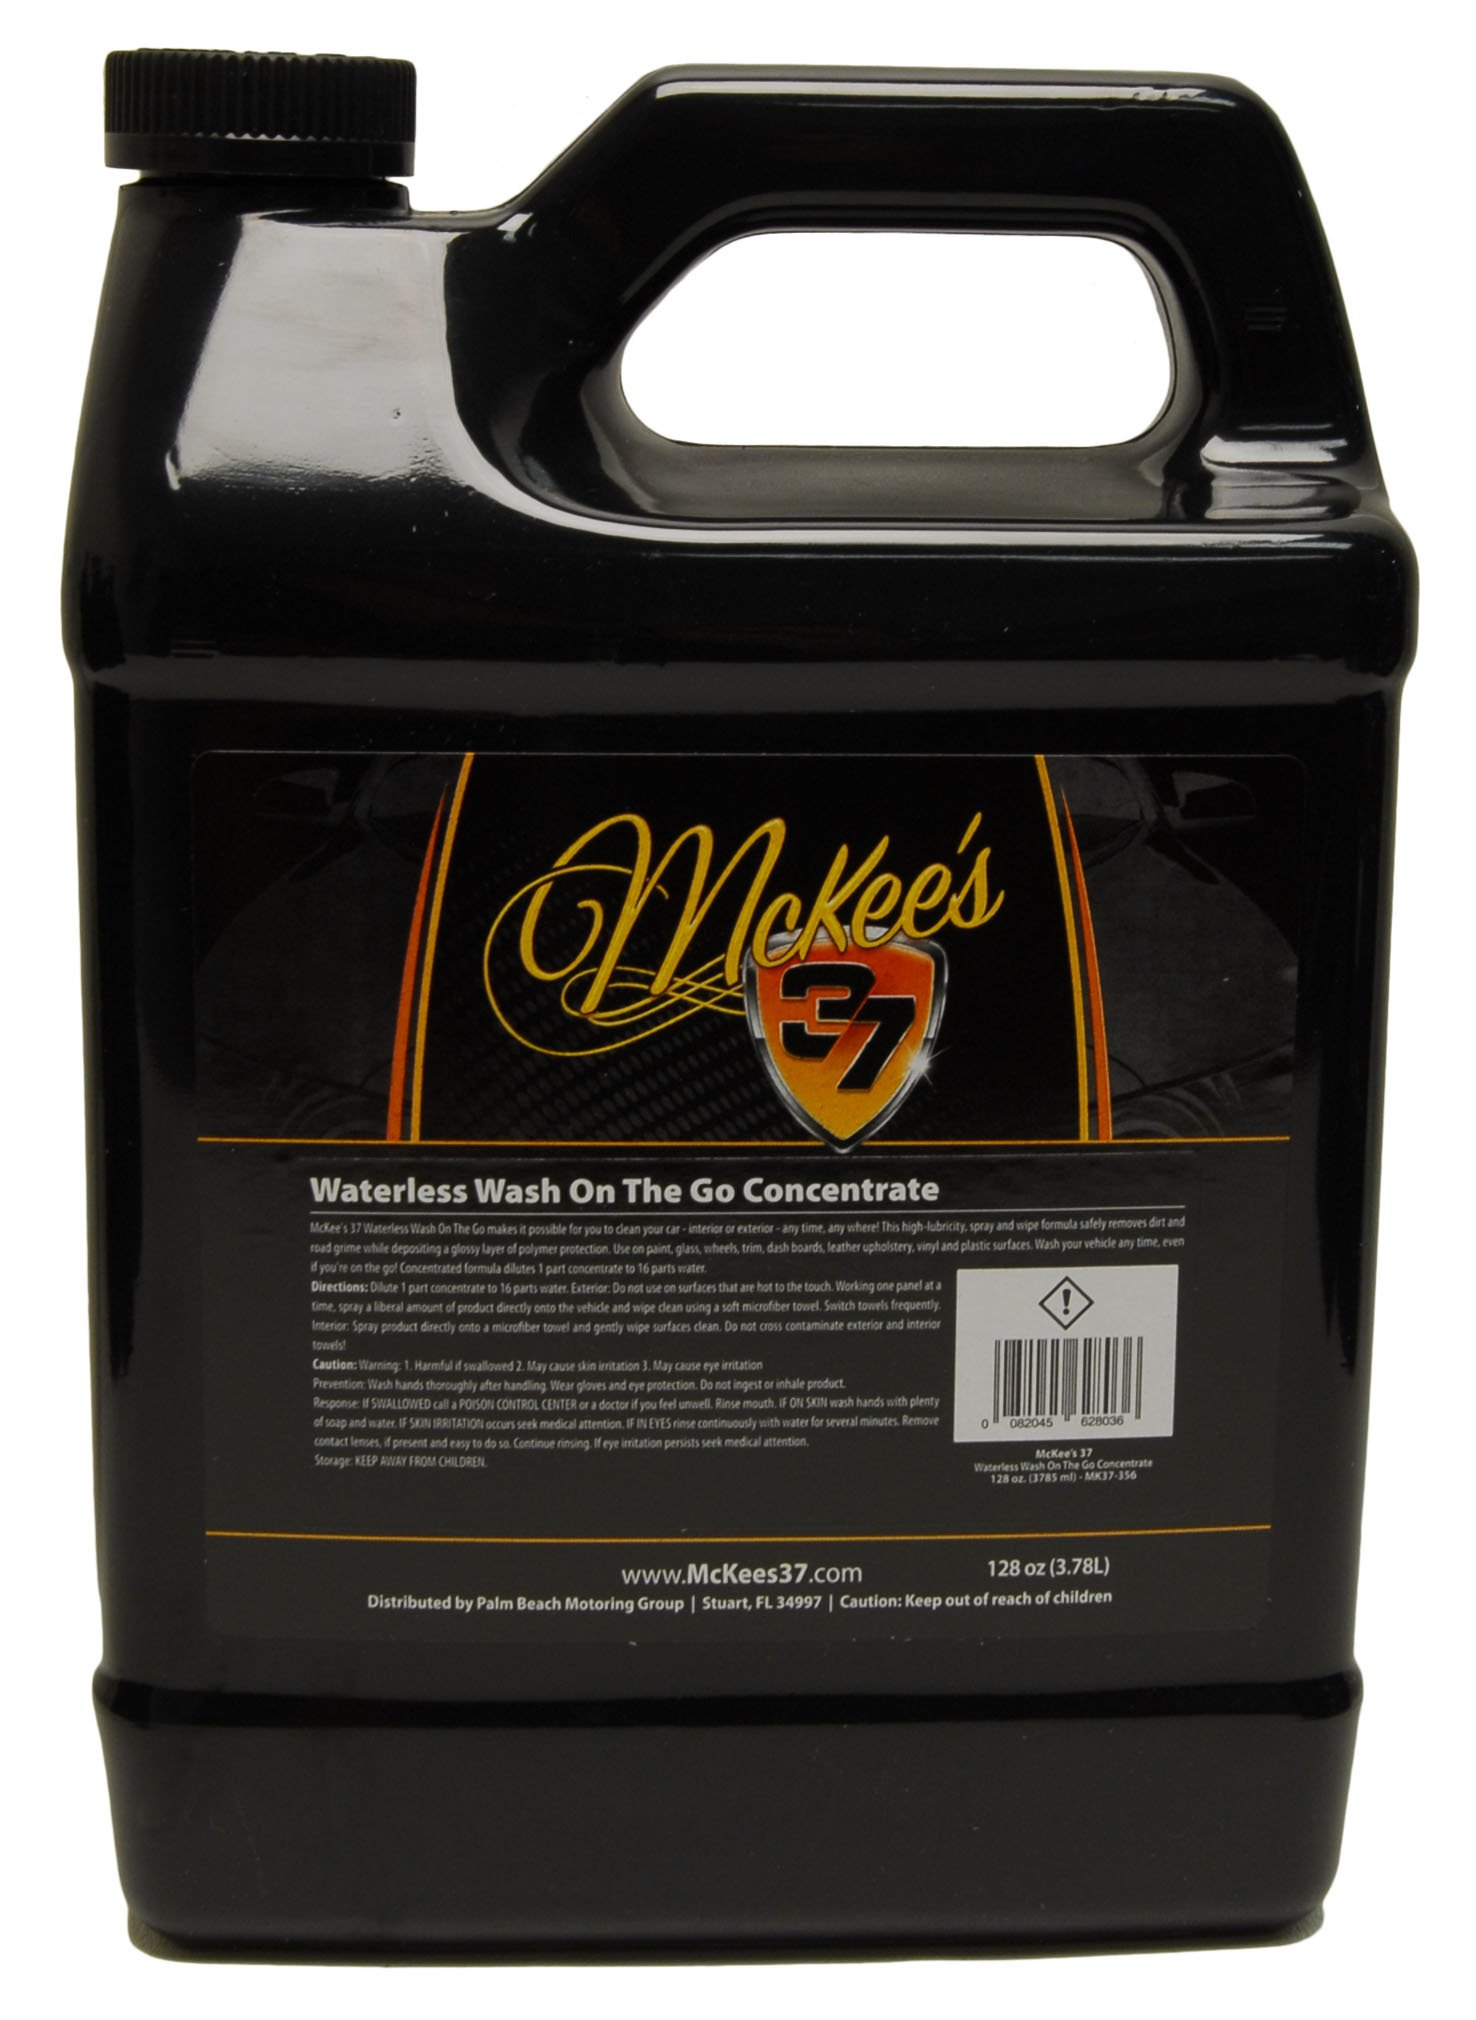 McKee's 37 MK37-356 Waterless Wash On The Go Concentrate 128 oz, 128. Fluid_Ounces